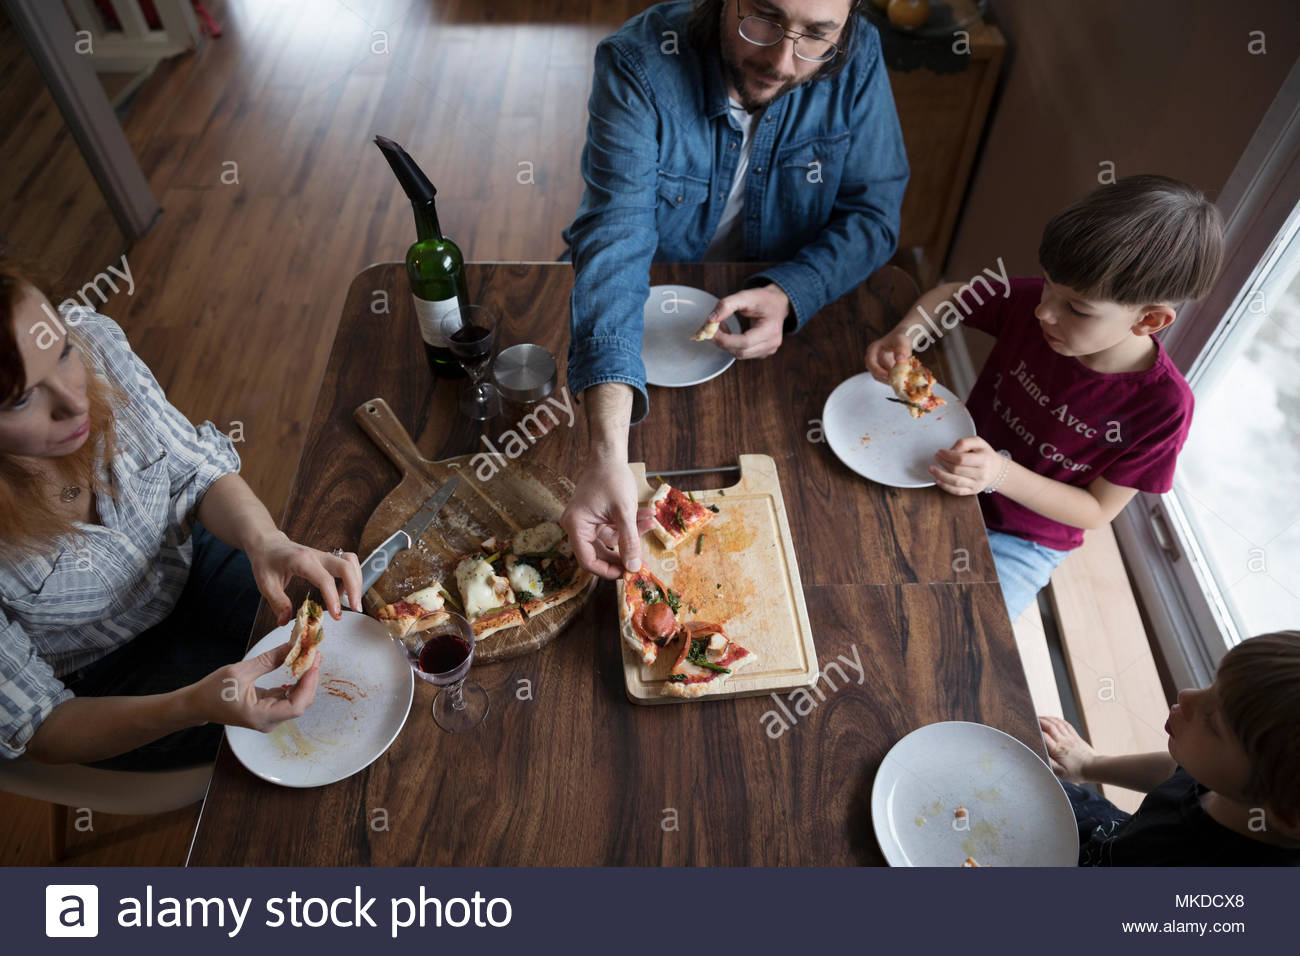 Overhead view family making homemade pizza at dining table - Stock Image